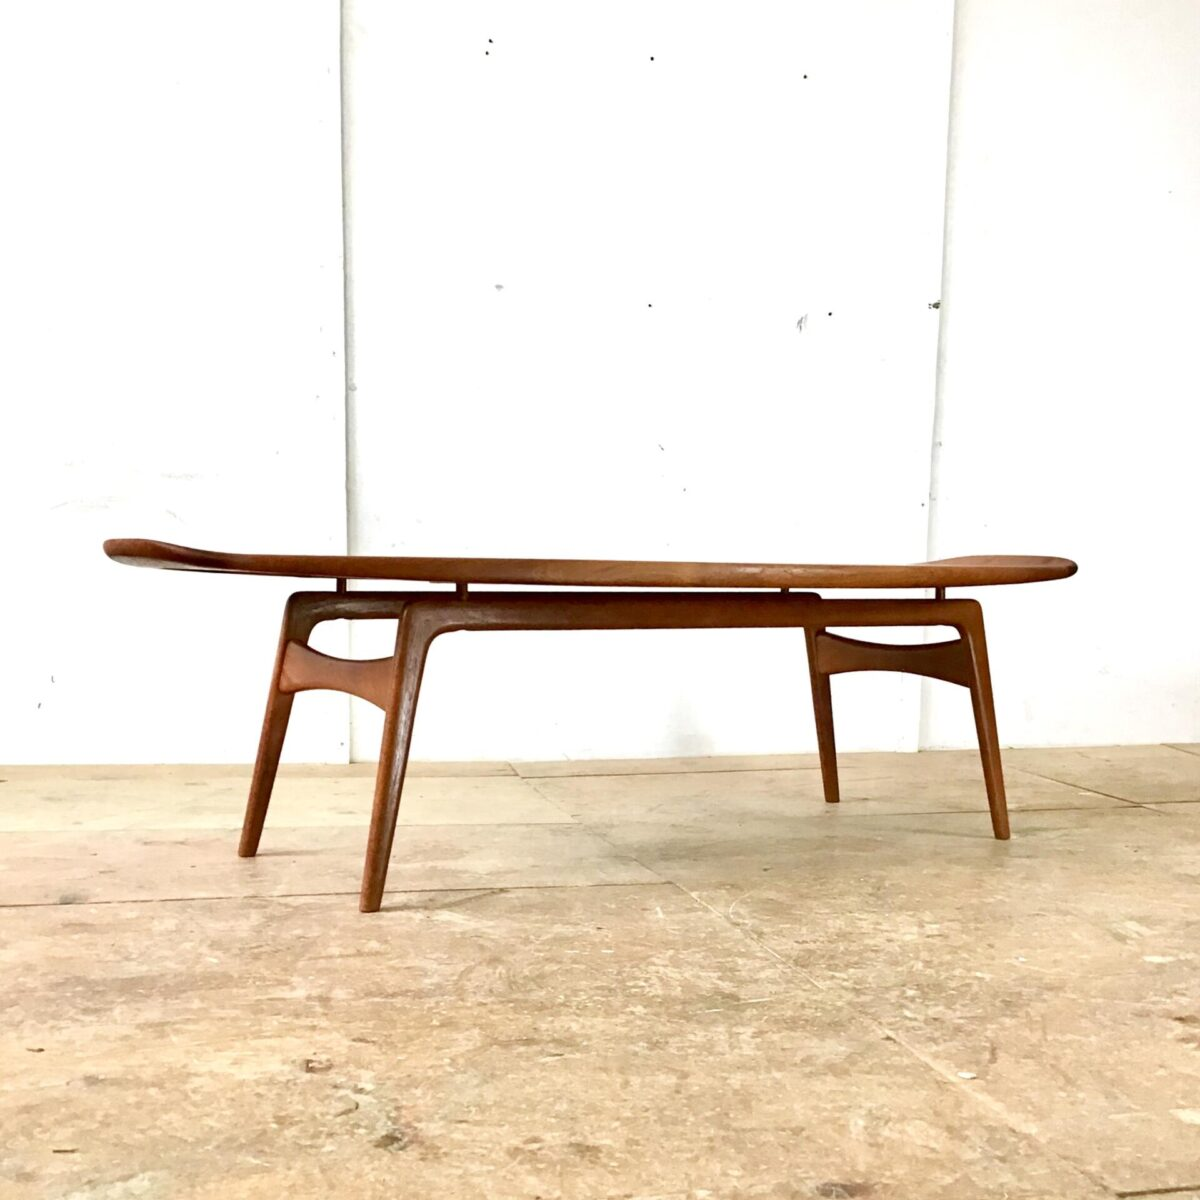 Midcentury coffetable craftsmaship made in Denmark Danish vintagefurniture 60s Salontisch